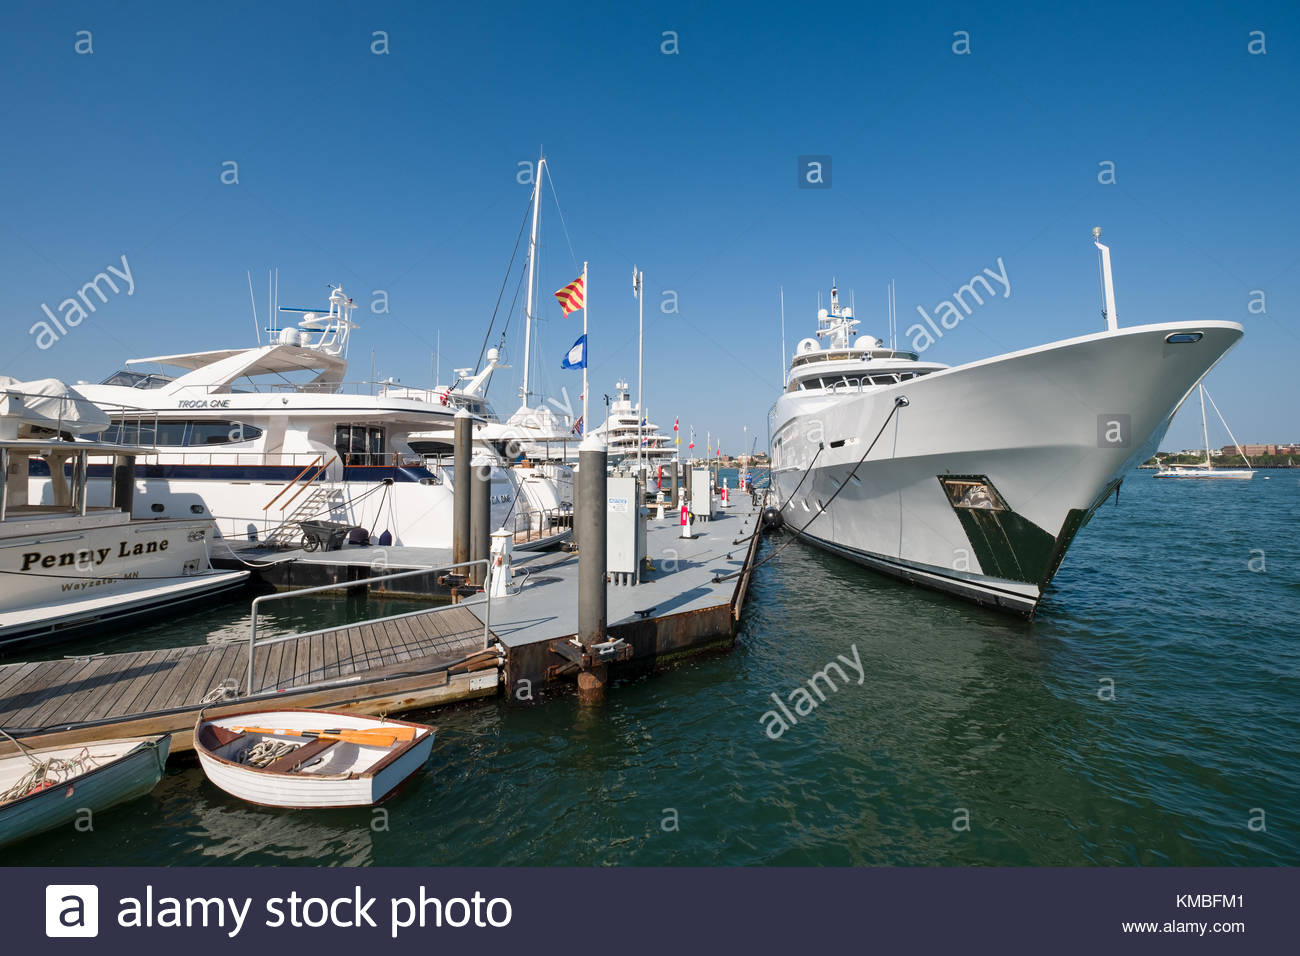 Large luxury yachts moored to floating pier in the Boston Waterboat Marina, North Atlantic Ocean, Boston, Suffolk - Stock Image